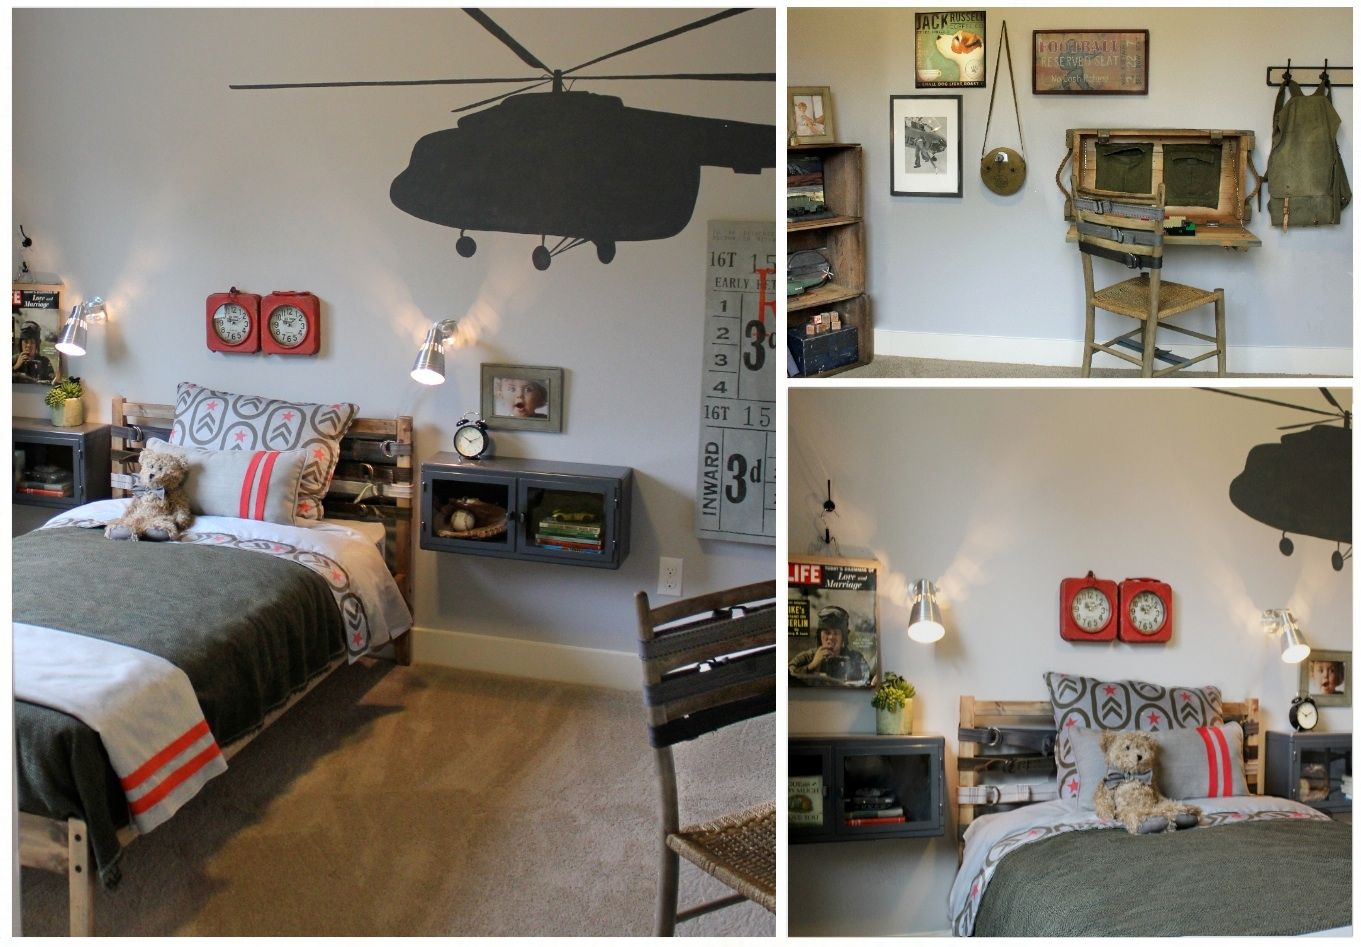 Pin By Danielle Erickson On My Design Work Boys Army Room Army Bedroom Military Bedroom